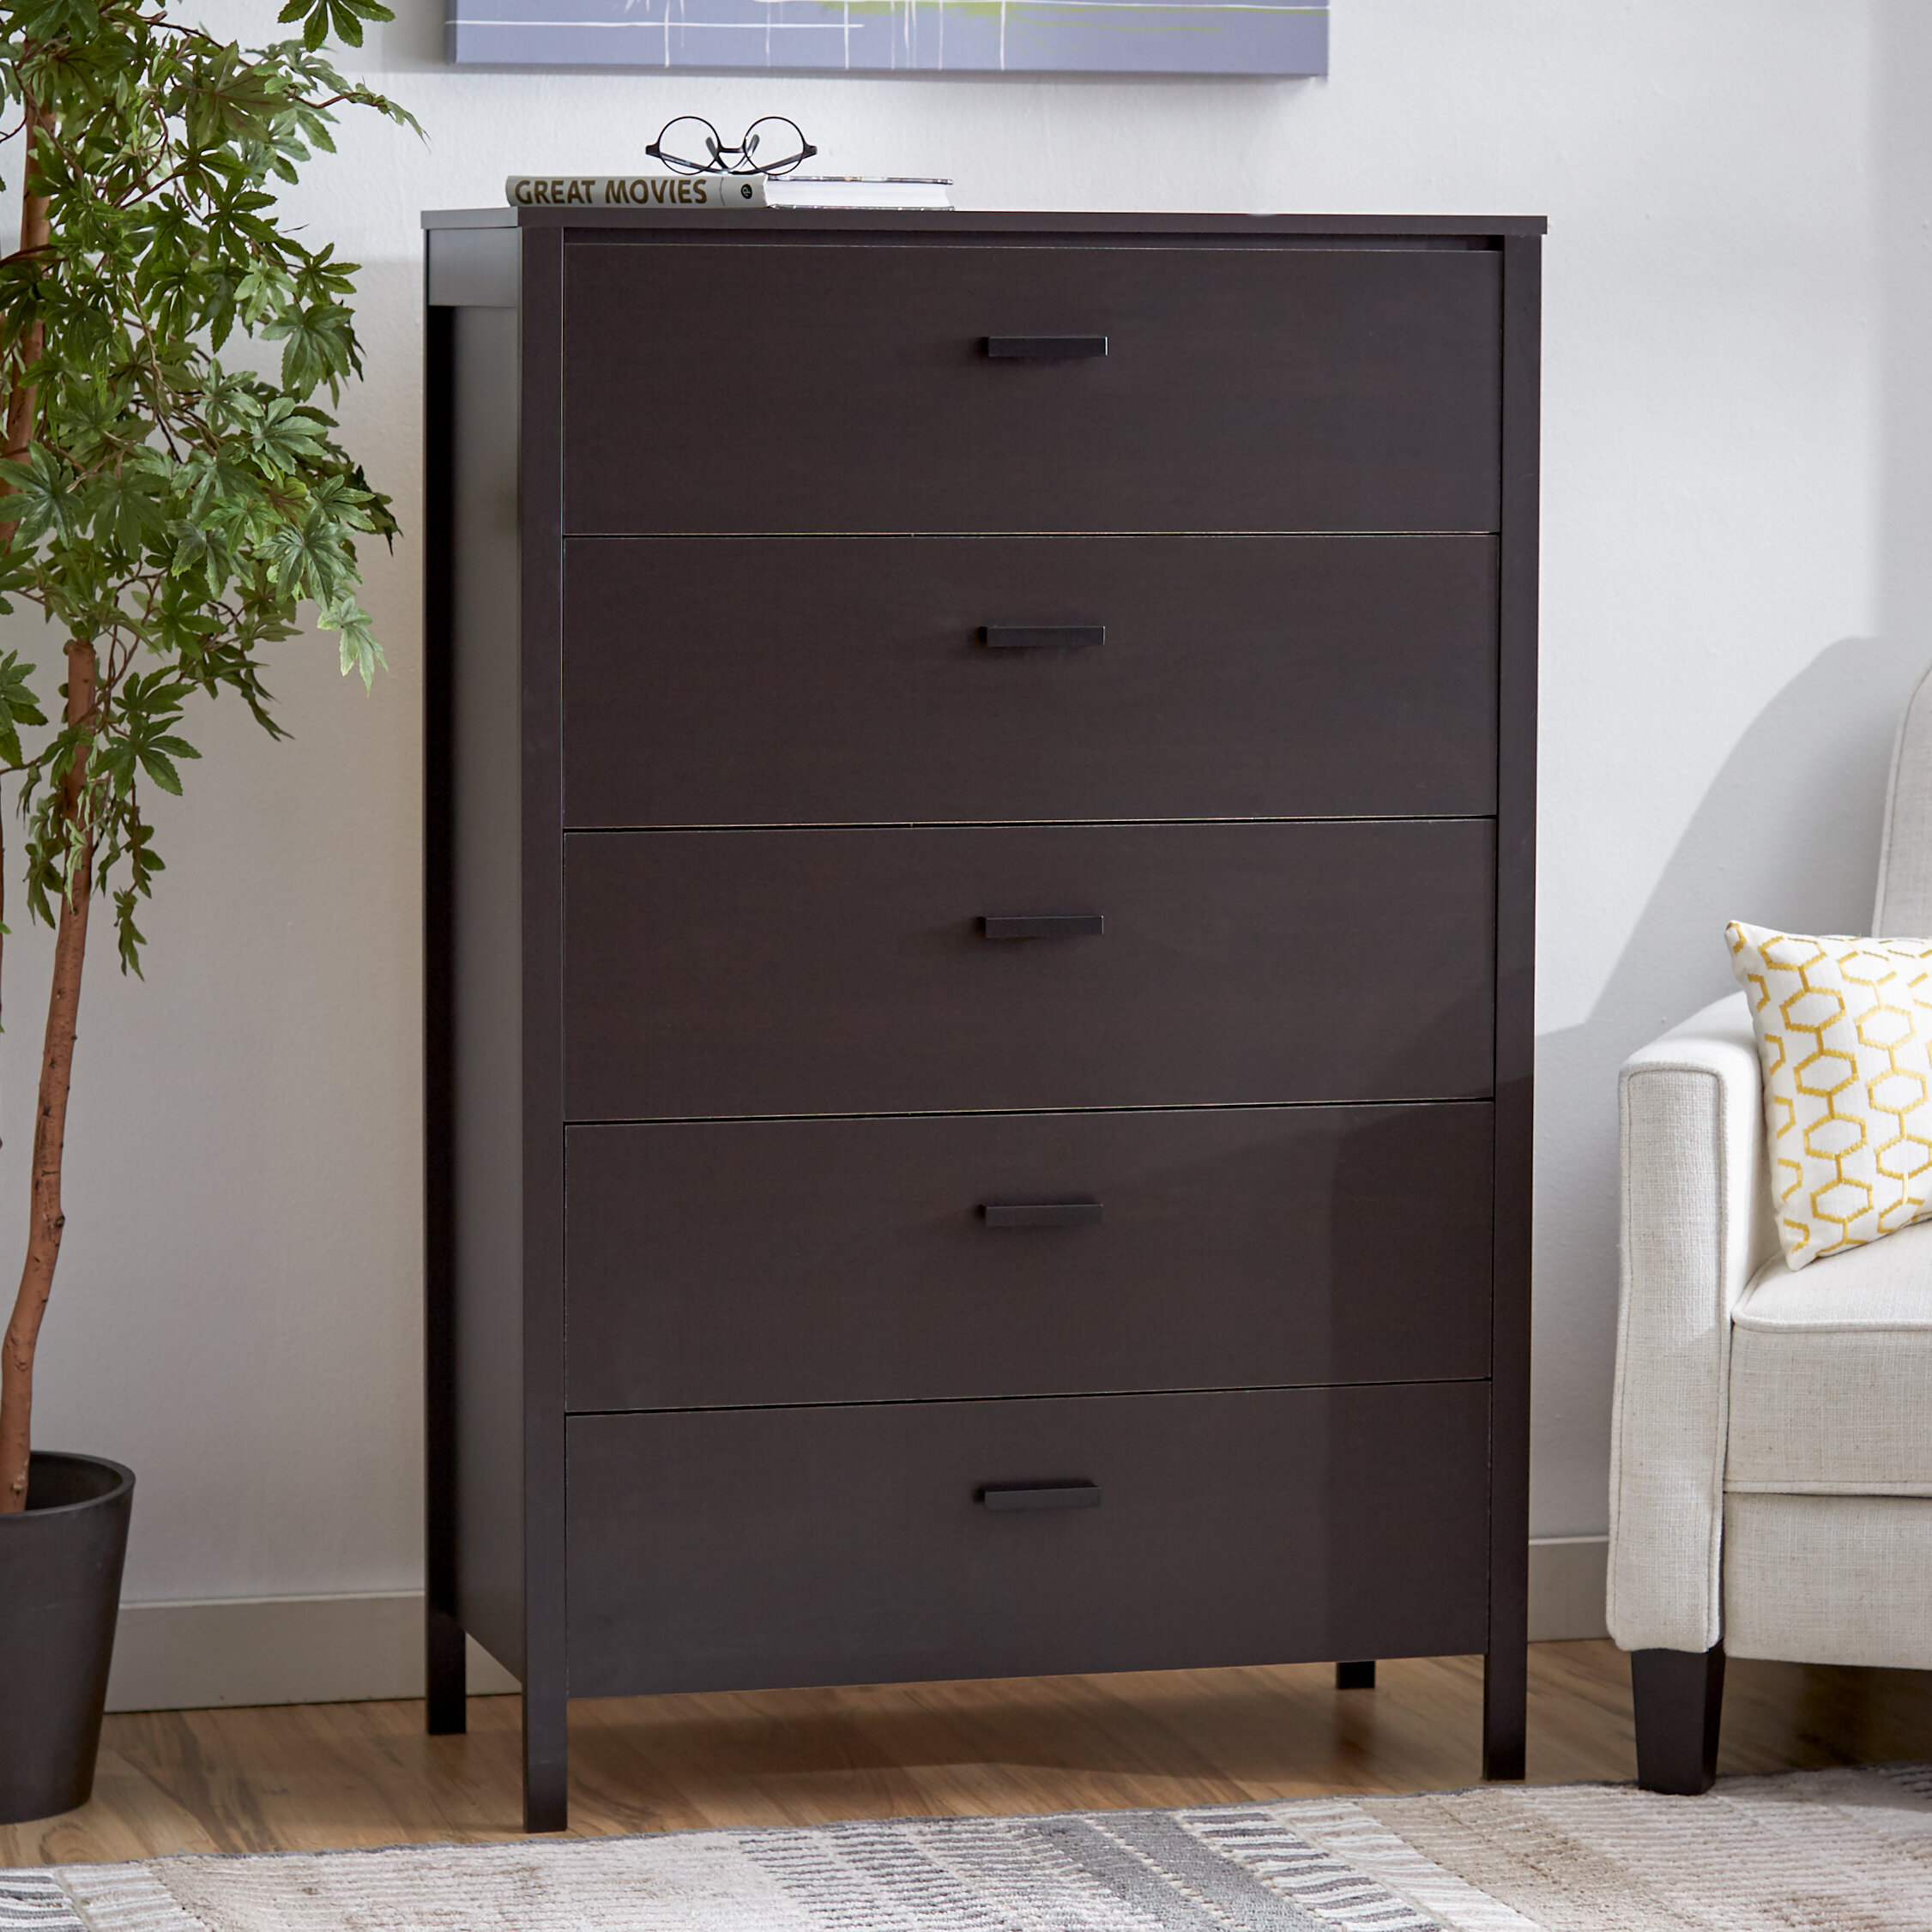 drawer madison kids furniture item legacy classic number homeworld products chest